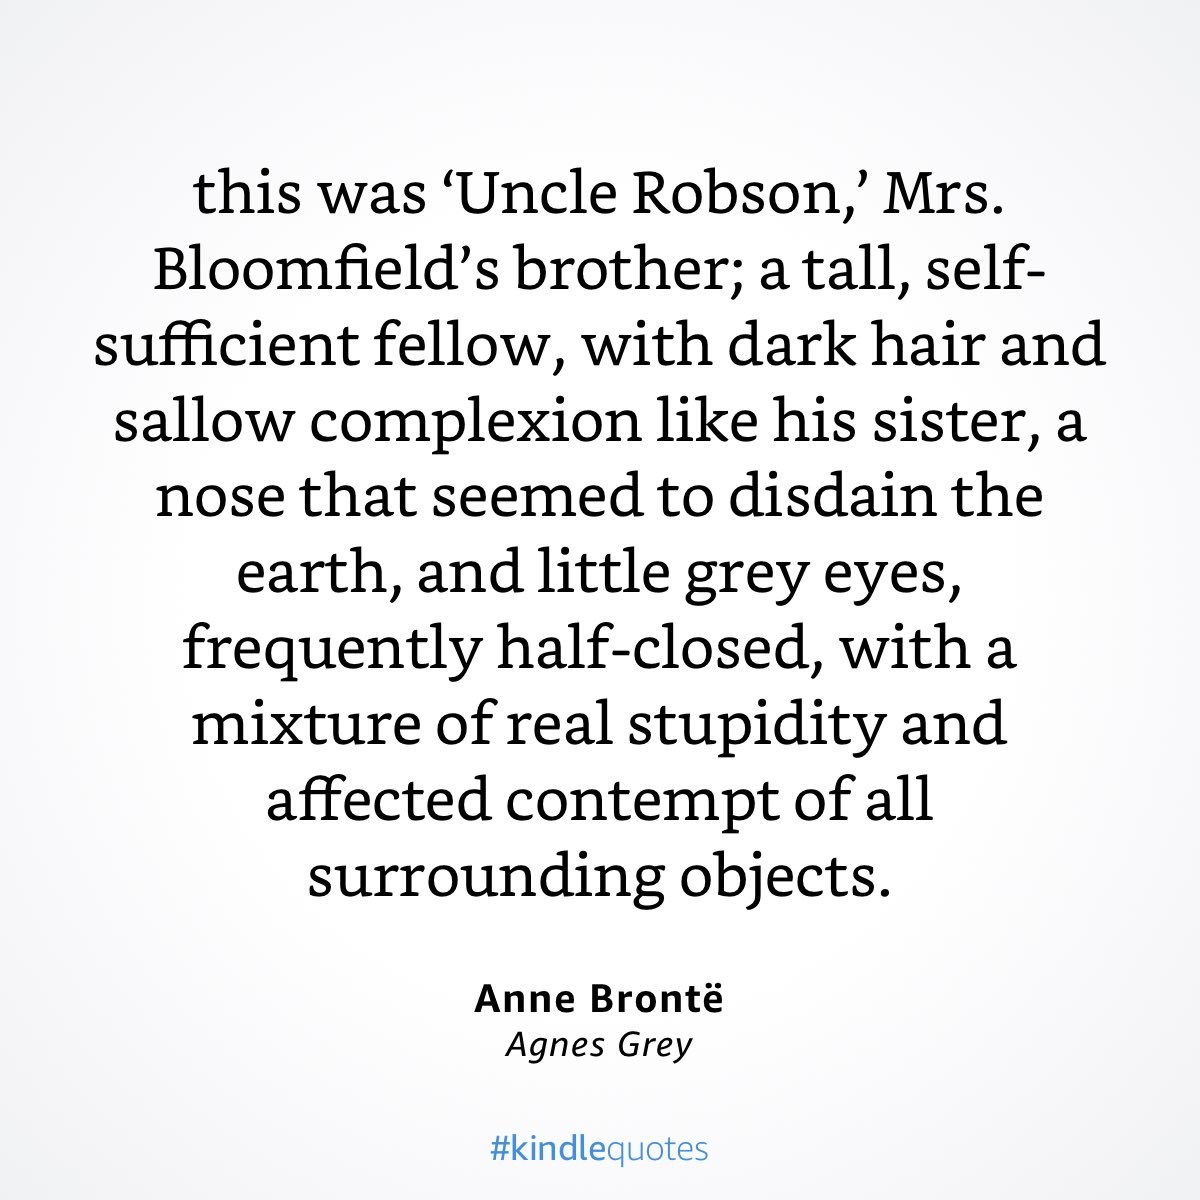 Great character description #Literature #Bronte #books  https://a.co/ijP1BFHpic.twitter.com/RamtY2H4TQ